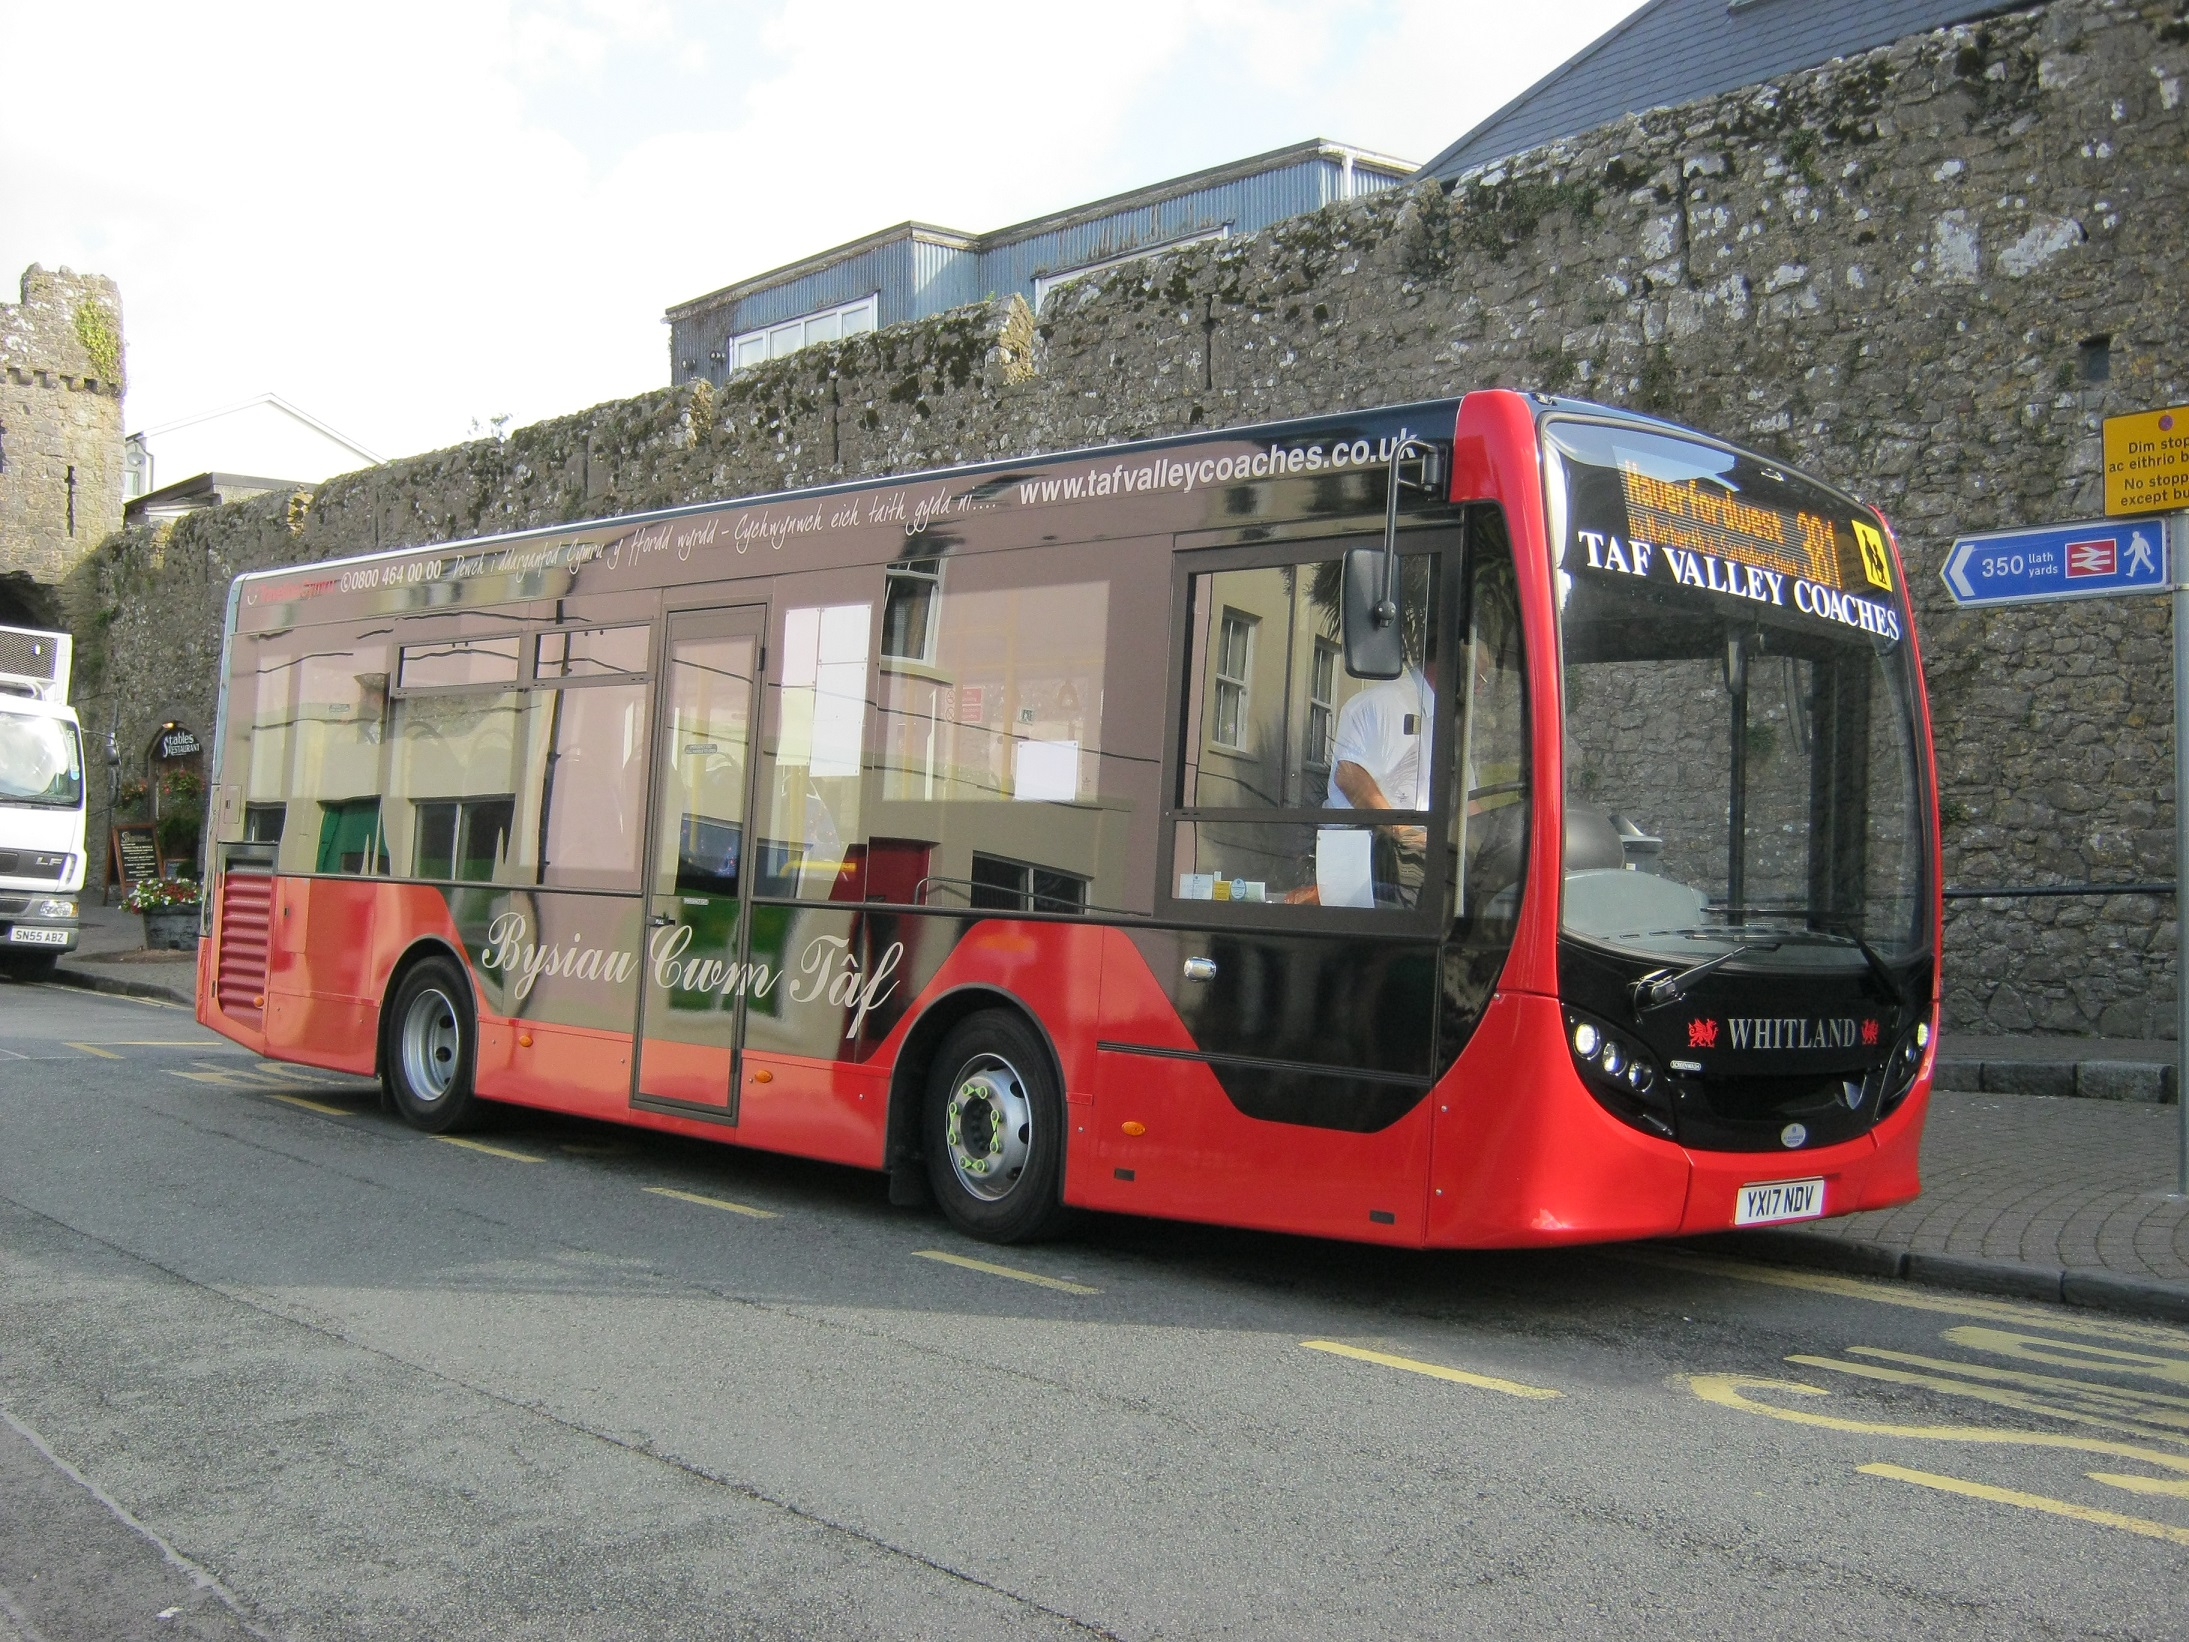 bus timetable changes designed to improve service - pembrokeshire